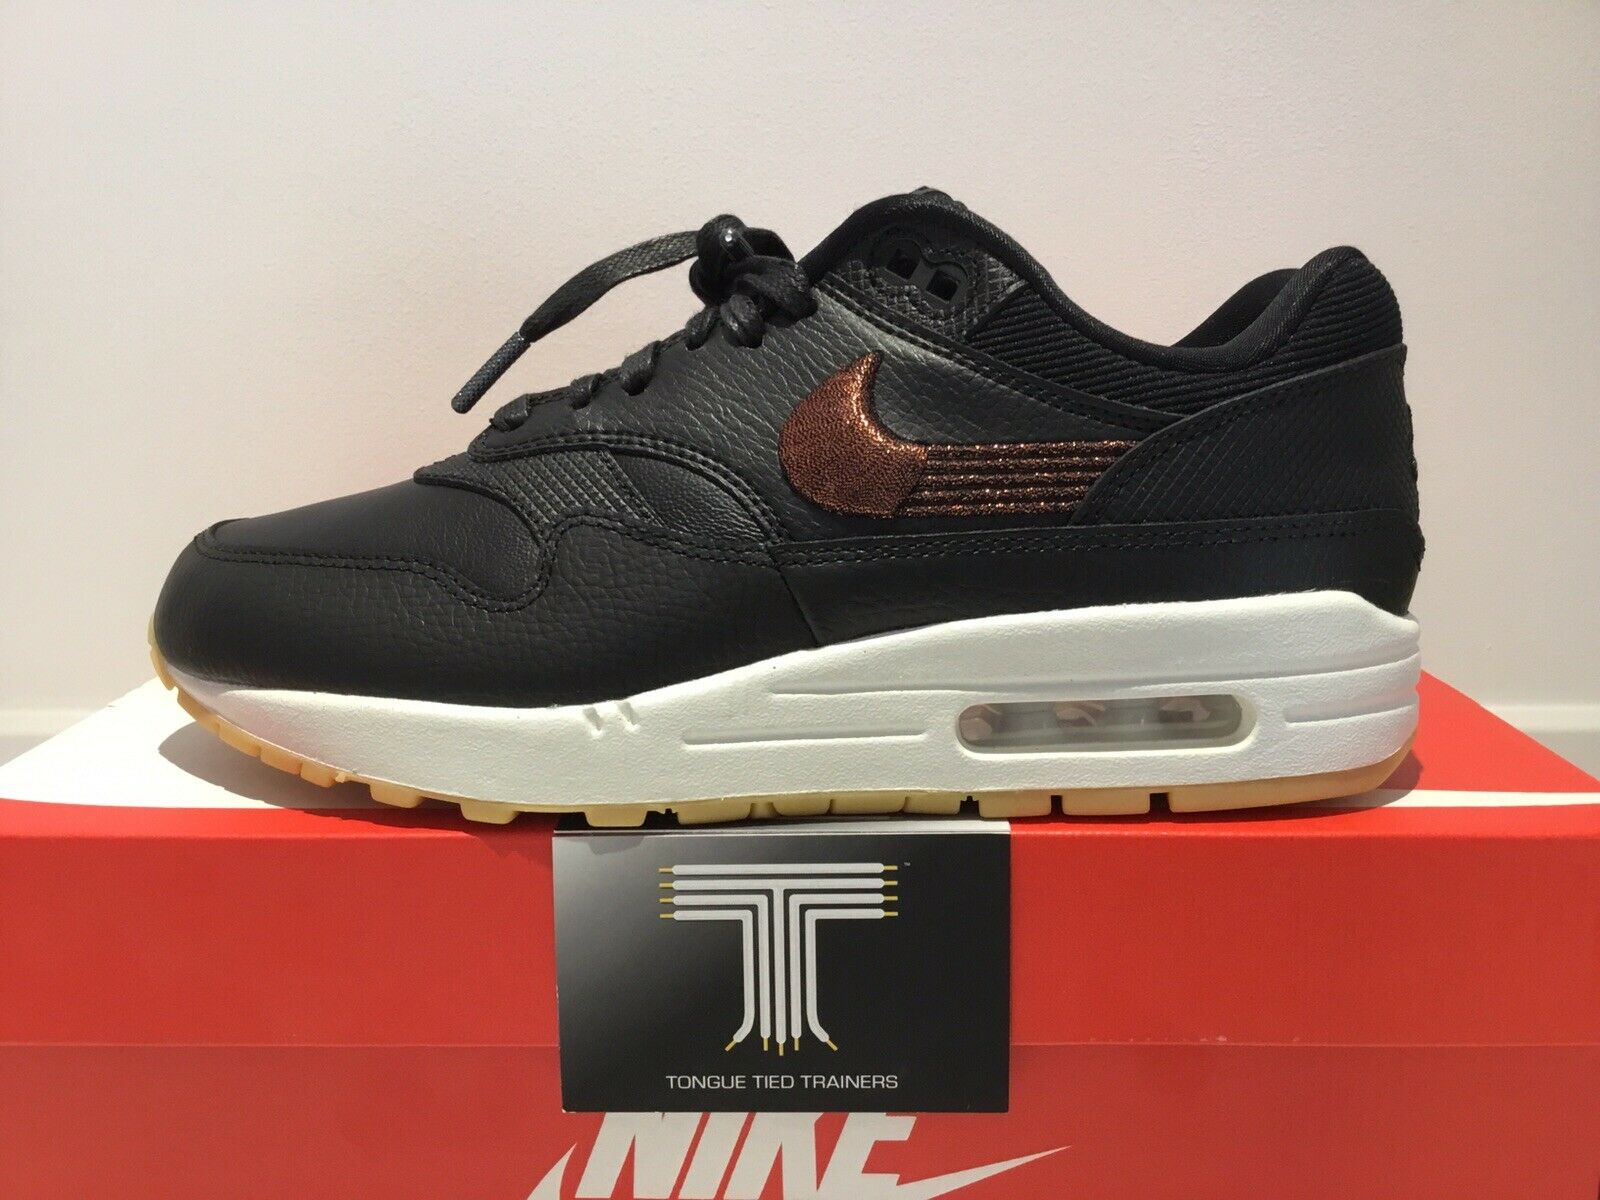 Nike Air Max 1 Premium Leather  454746  020  U.K. Dimensione 6  Euro 40  online economico